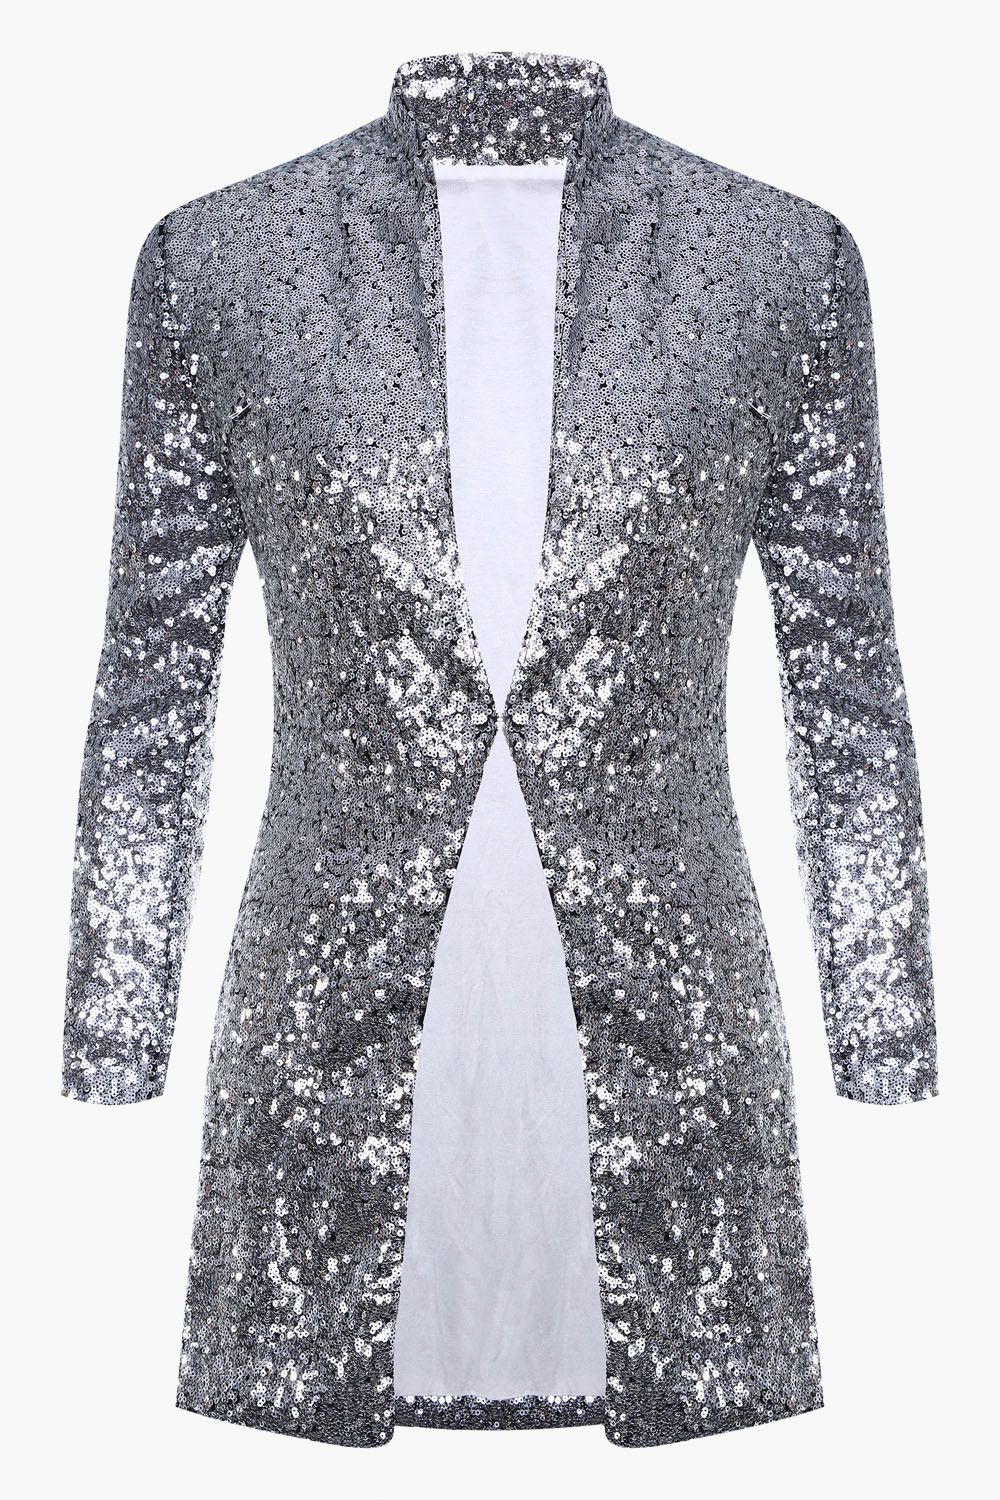 Silver sequinted long u loose open blazer genuinepeople my type